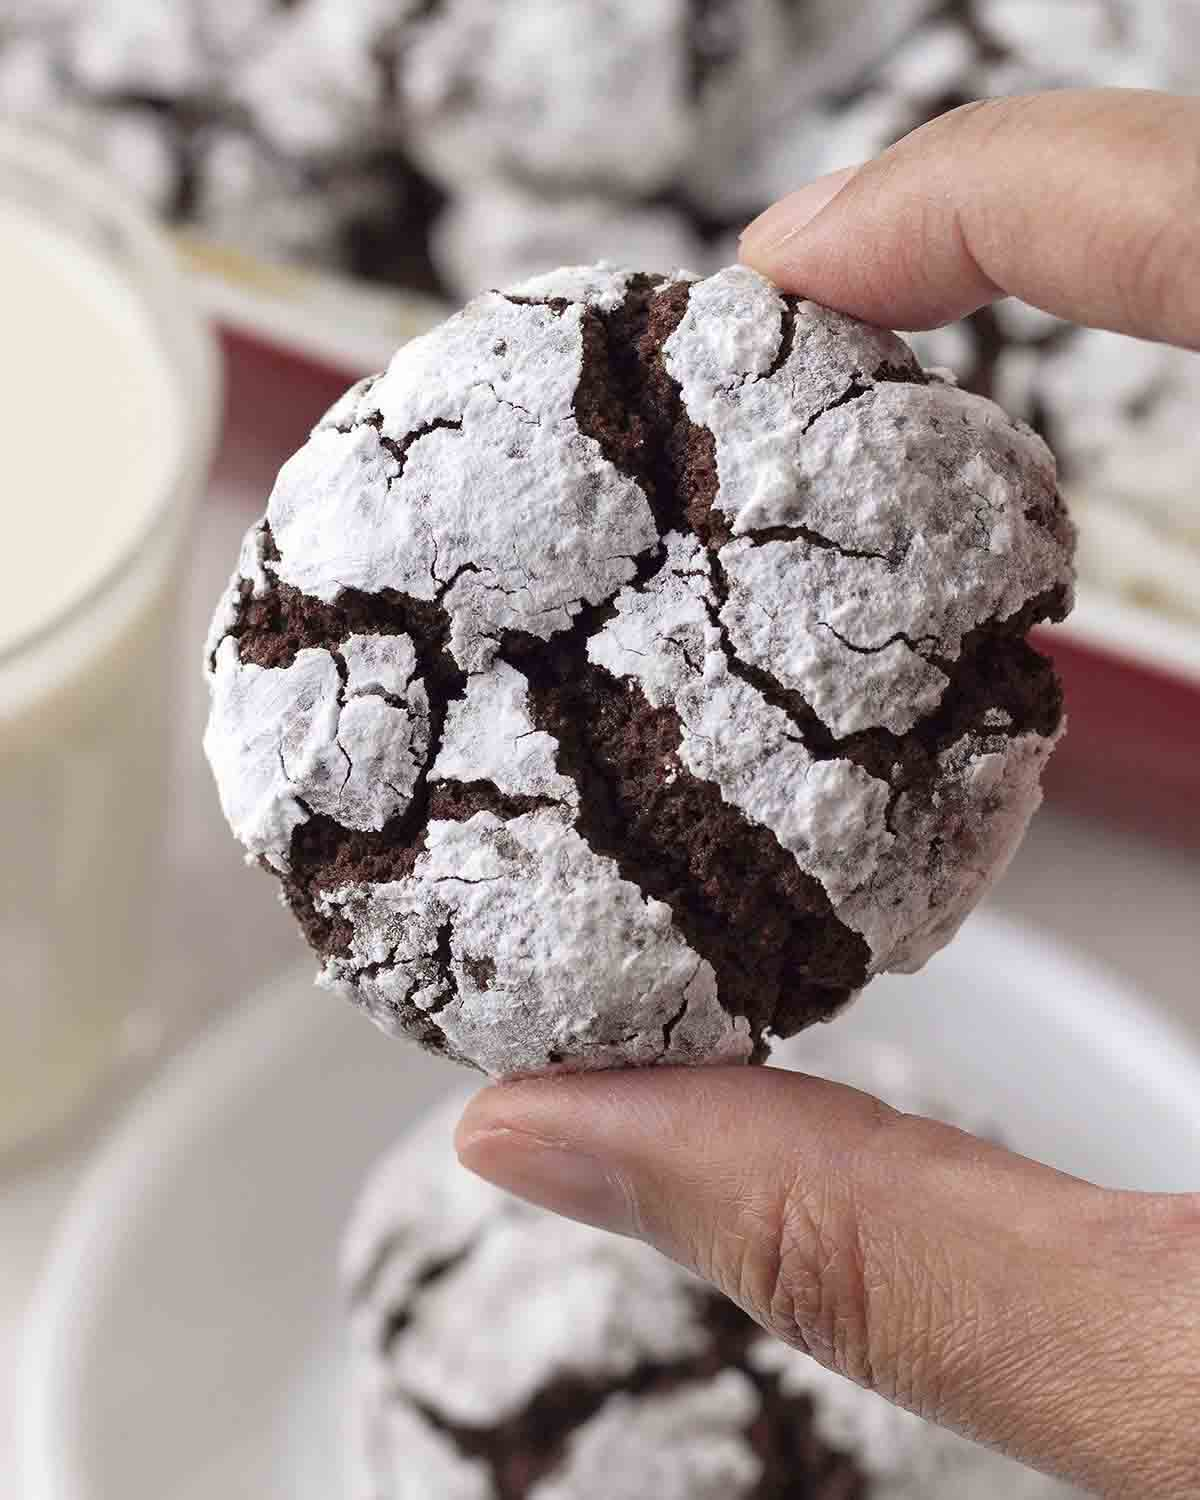 A hand holding up a holiday chocolate crinkle cookie to show the crackly textured top.